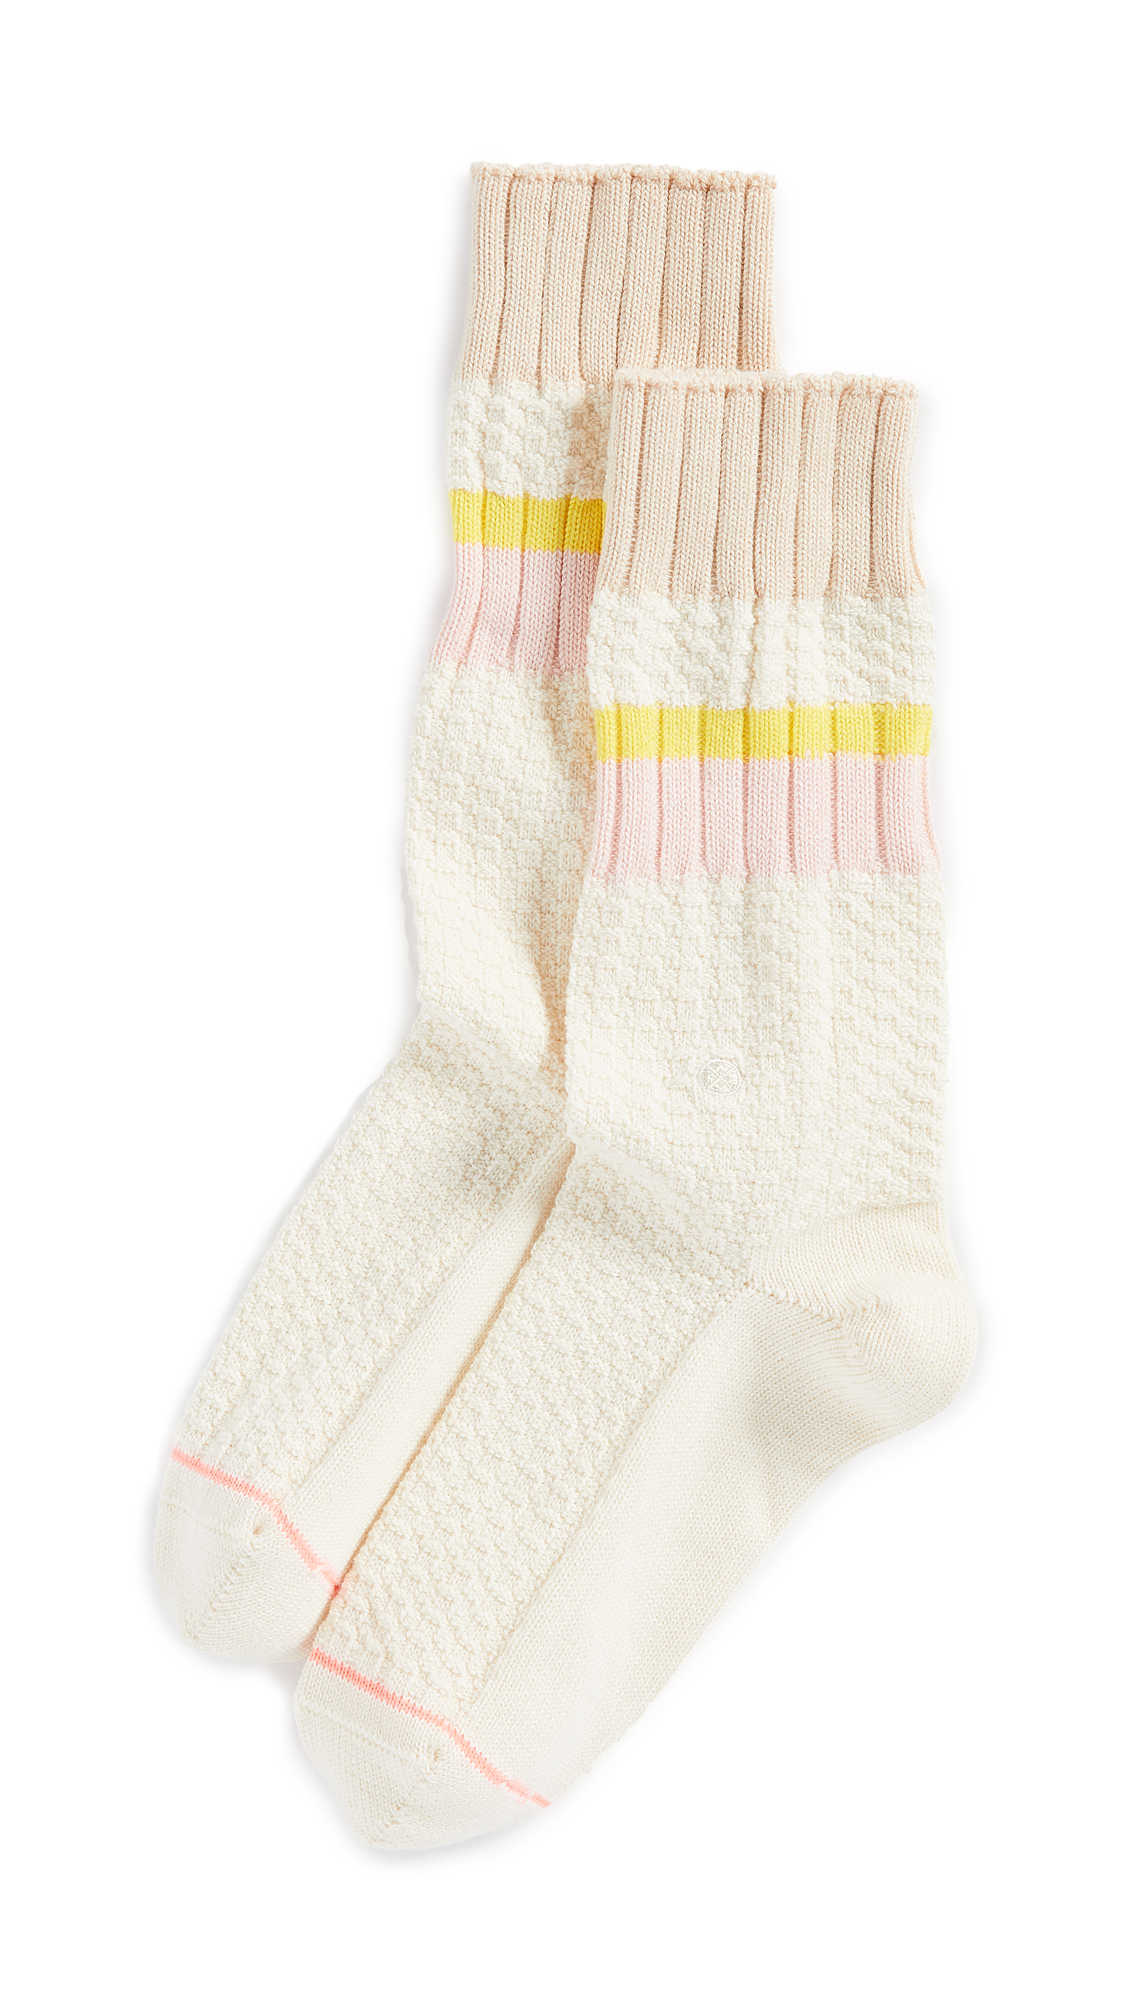 STANCE Breaktime Socks In Cream